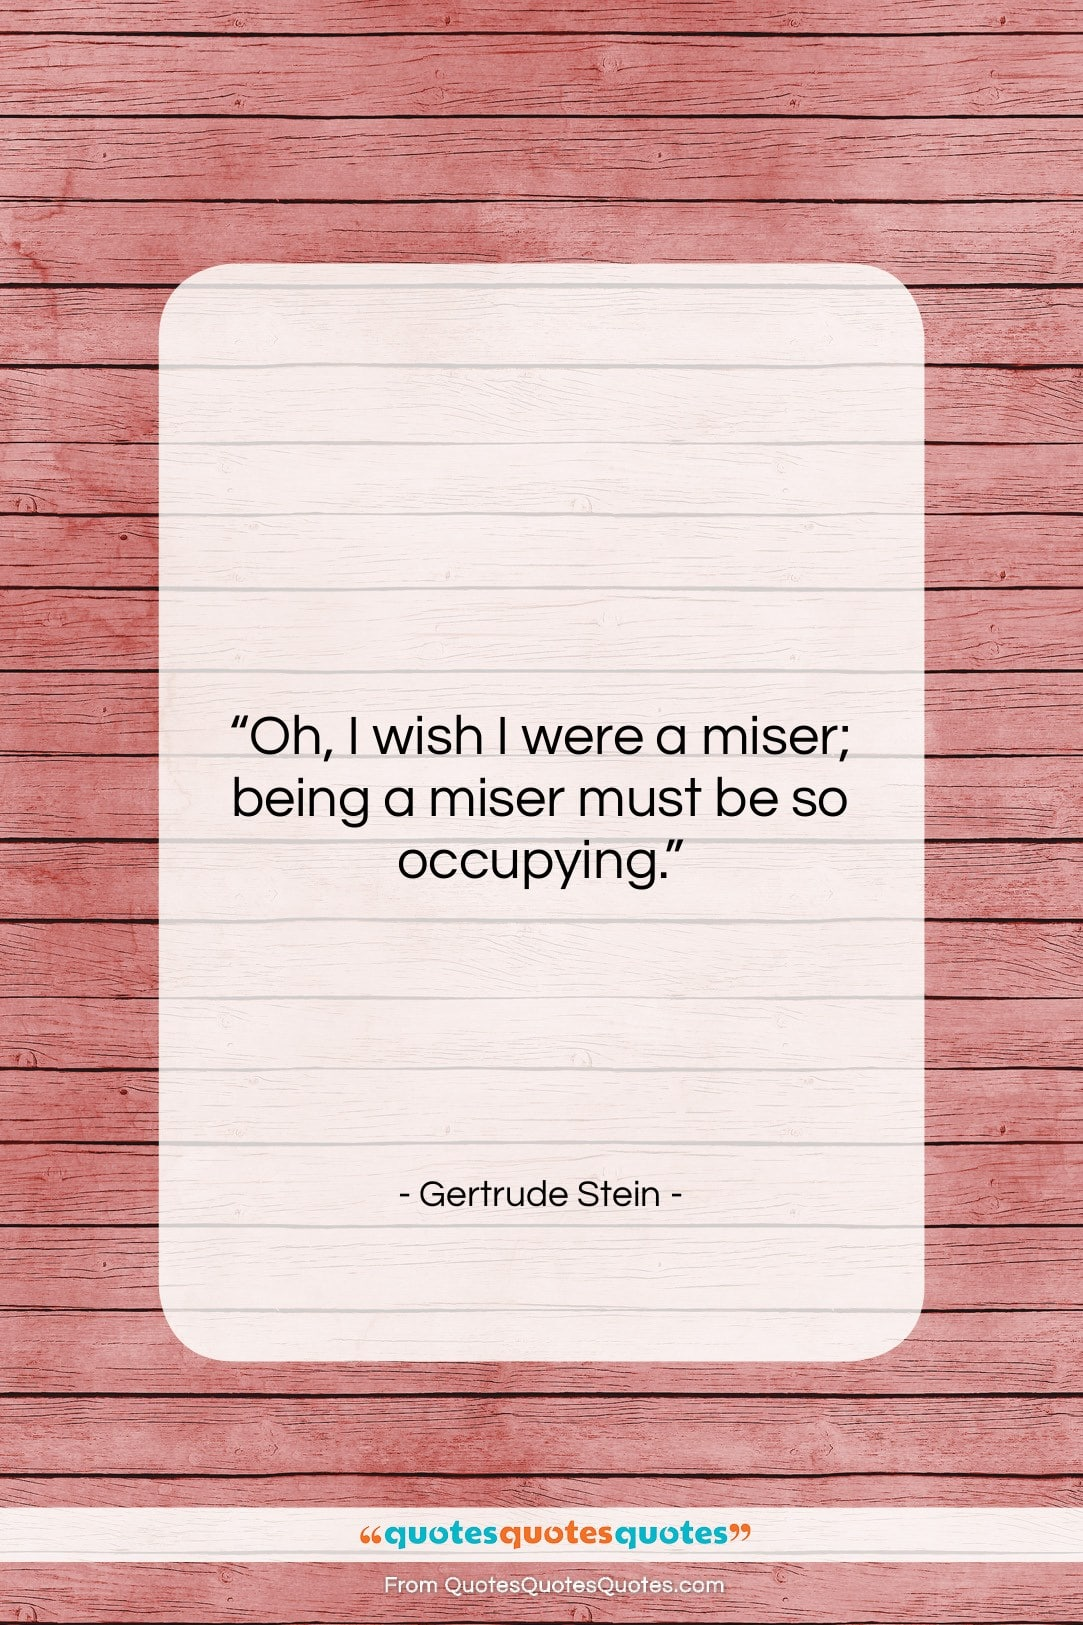 """Gertrude Stein quote: """"Oh, I wish I were a miser;…""""- at QuotesQuotesQuotes.com"""